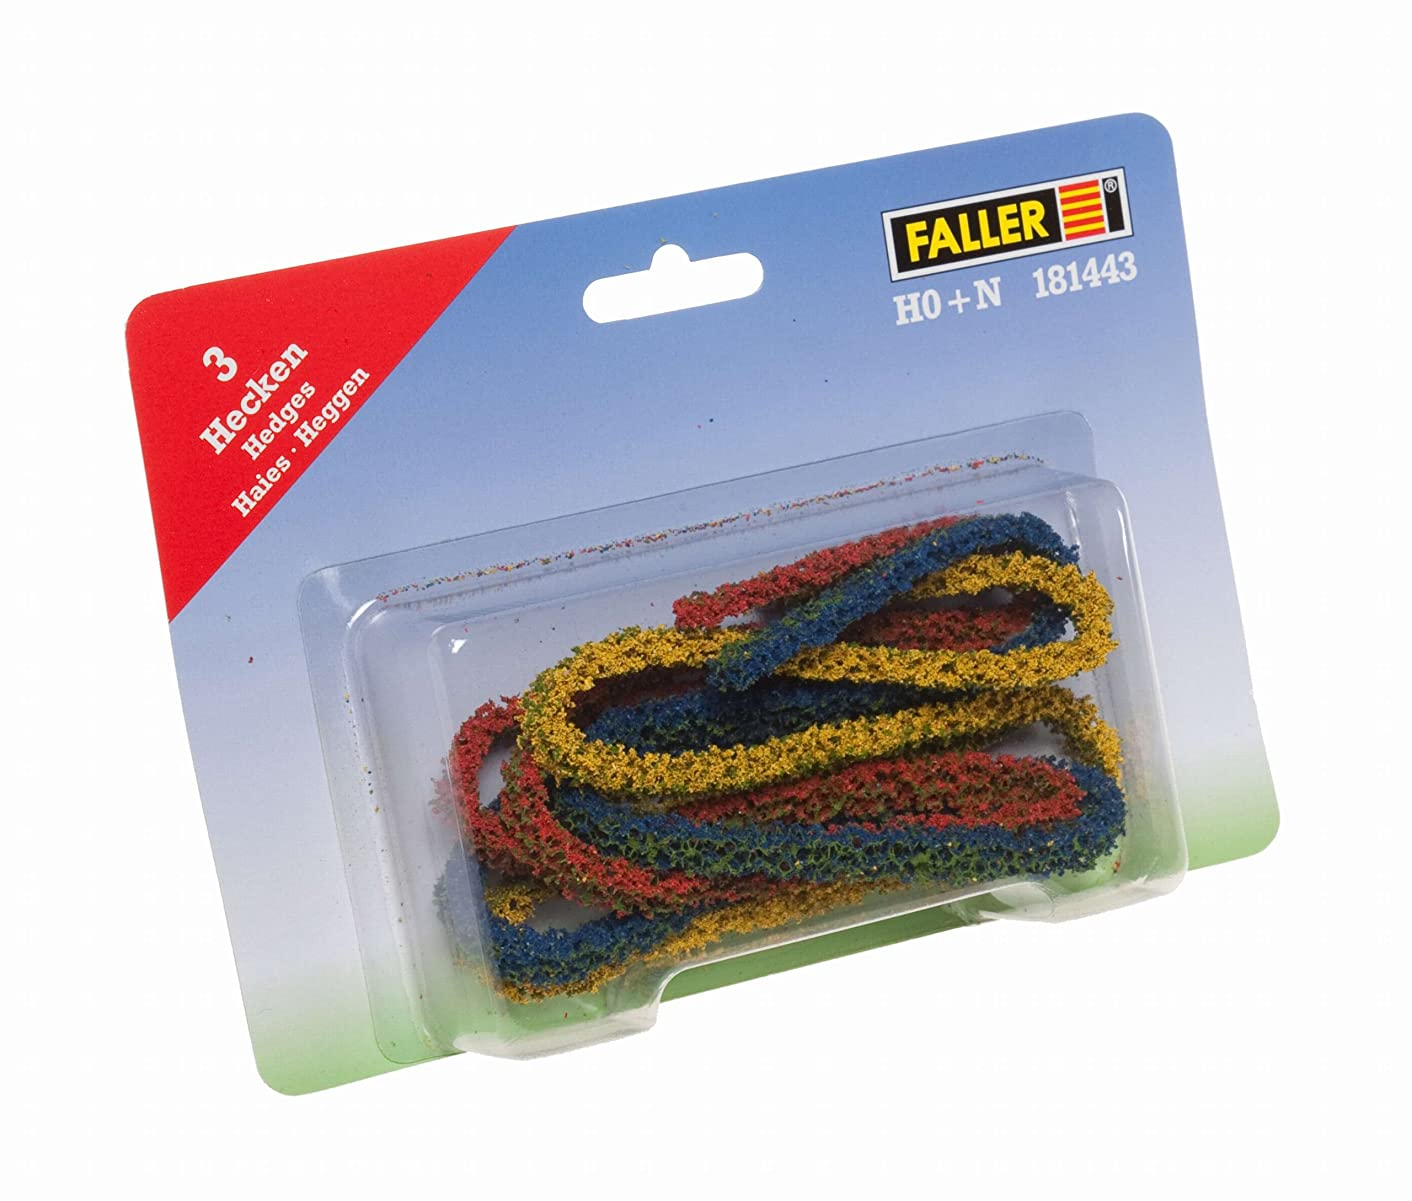 Faller 181443 Bushes/Hedges,Red,Green, Scenery and Accessories, Yellow